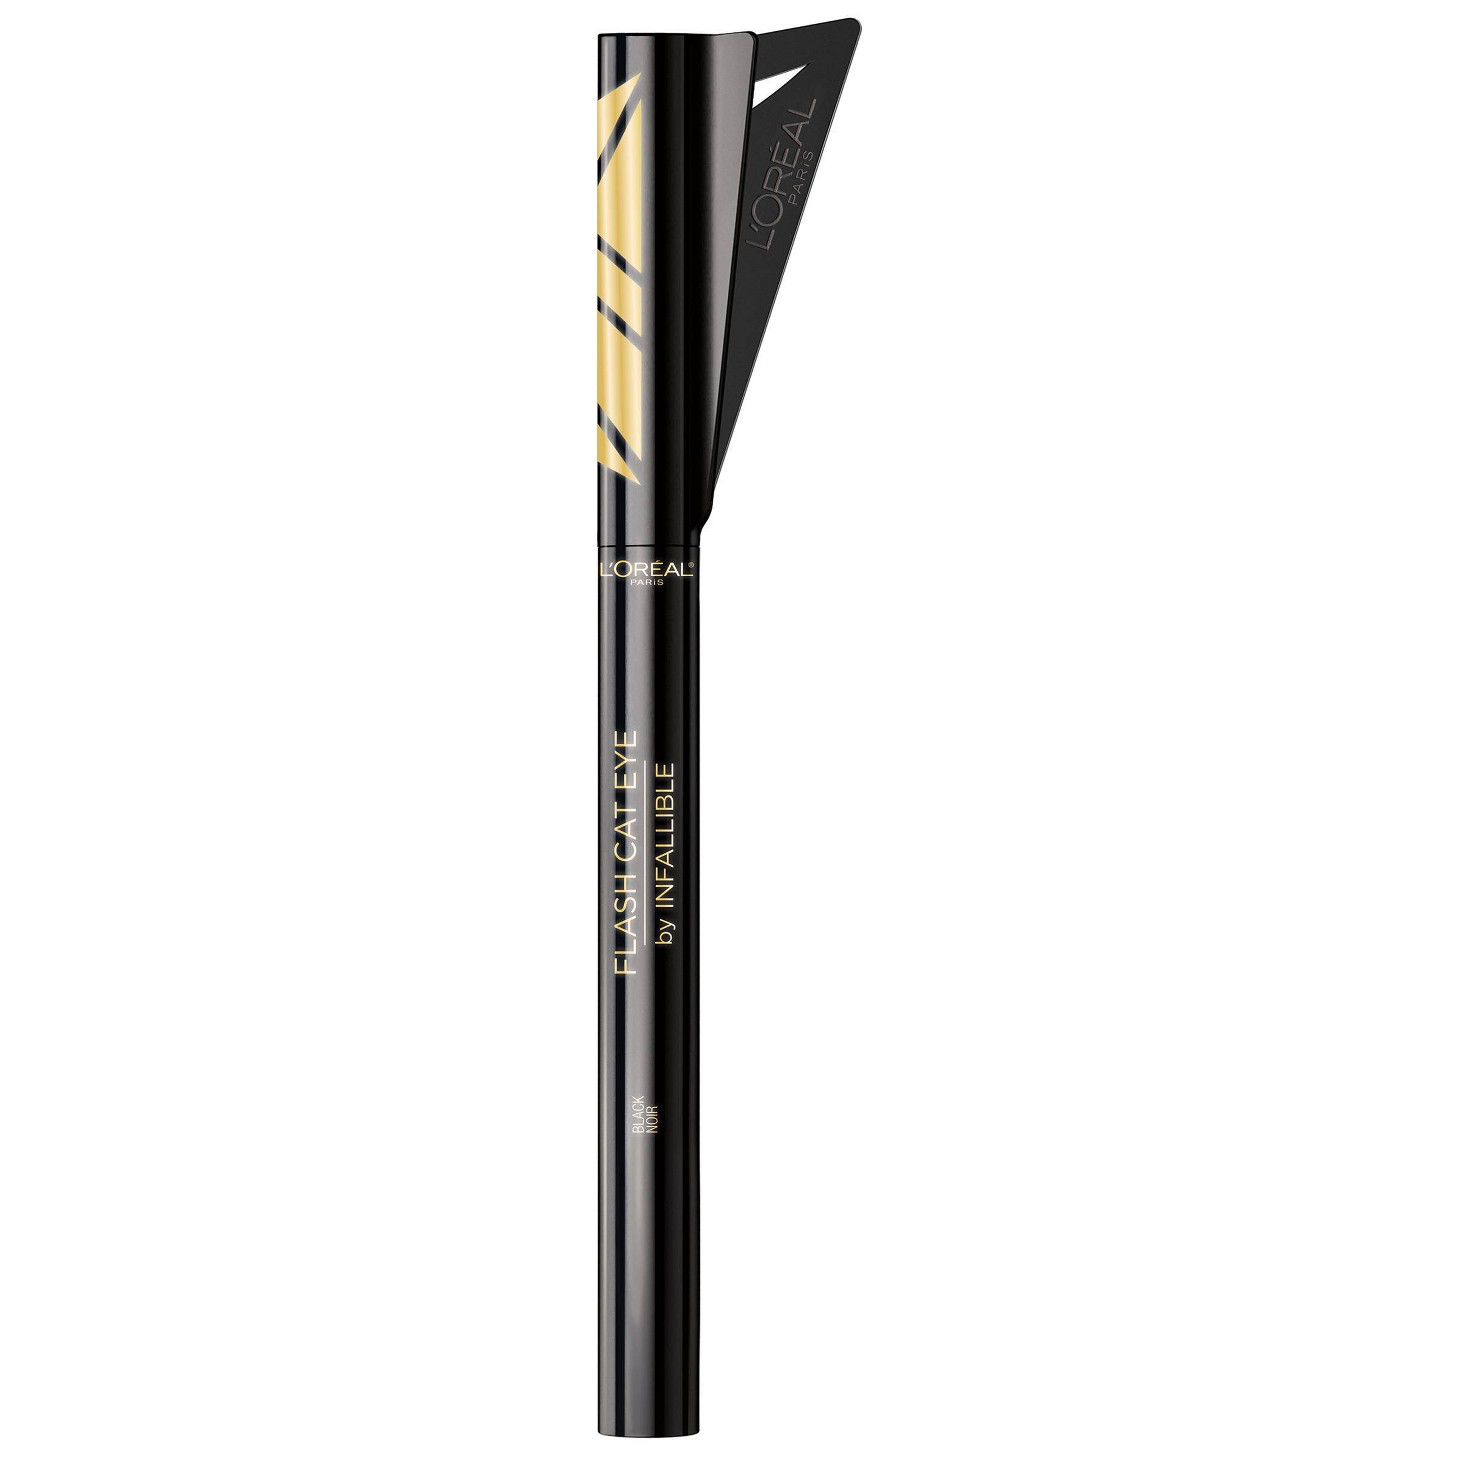 Infallible__Flash_Cat_Eye_Waterproof_Brush_Tip_Liquid_Eyeliner_from_L_Oreal_Paris_2.png